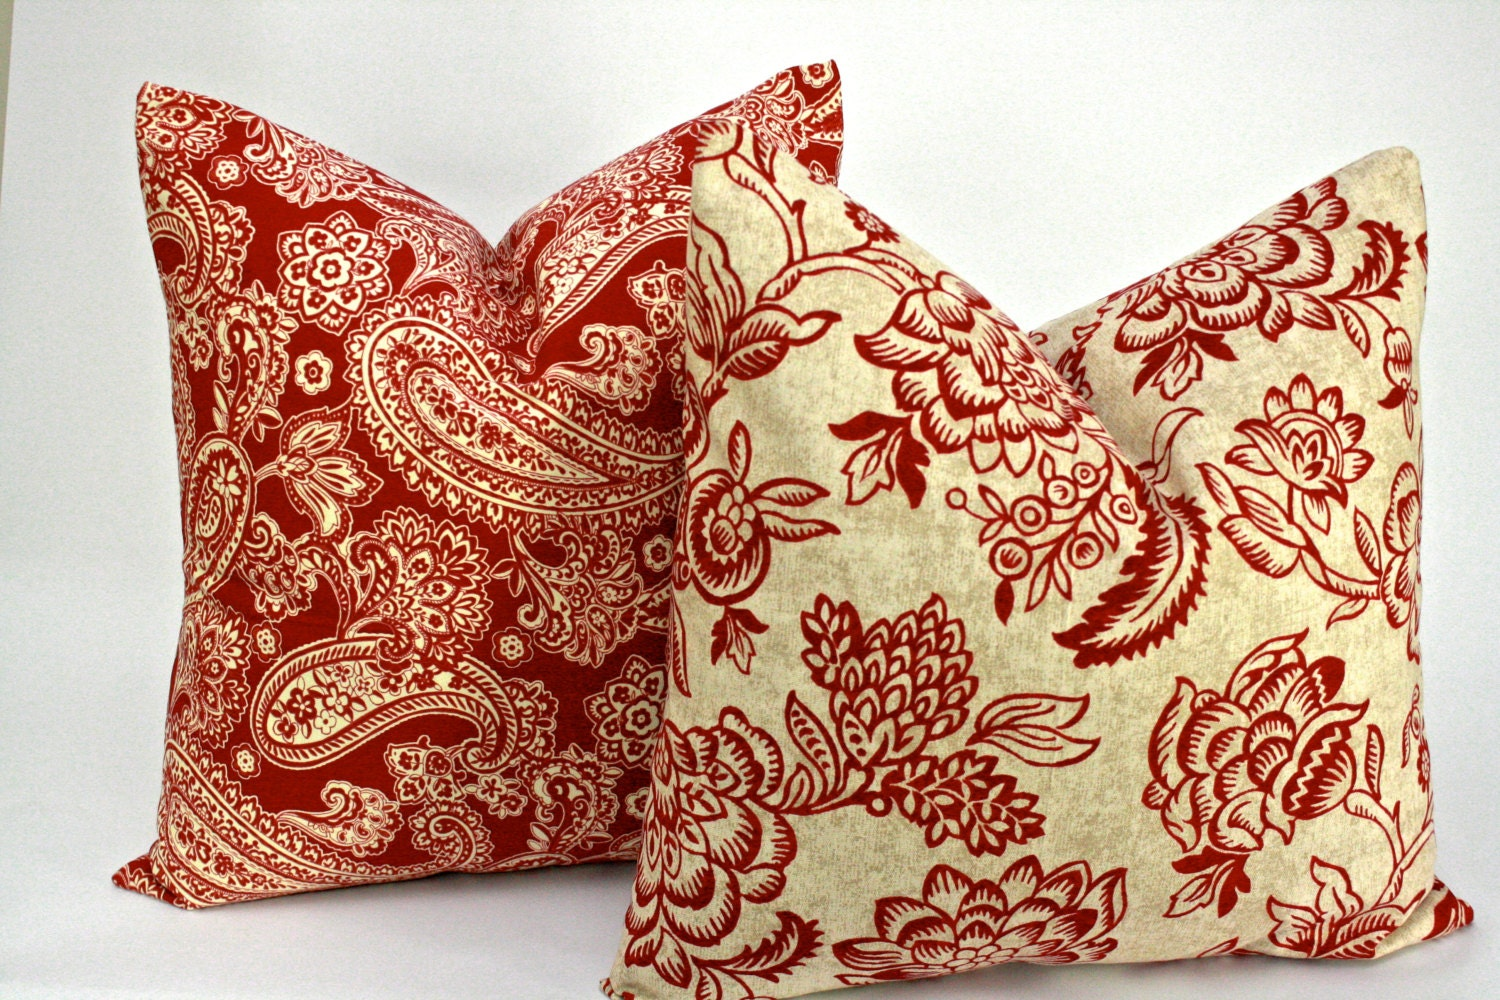 Brick Red and Tan Pillow Covers in Paisley and Floral by StyleItUp